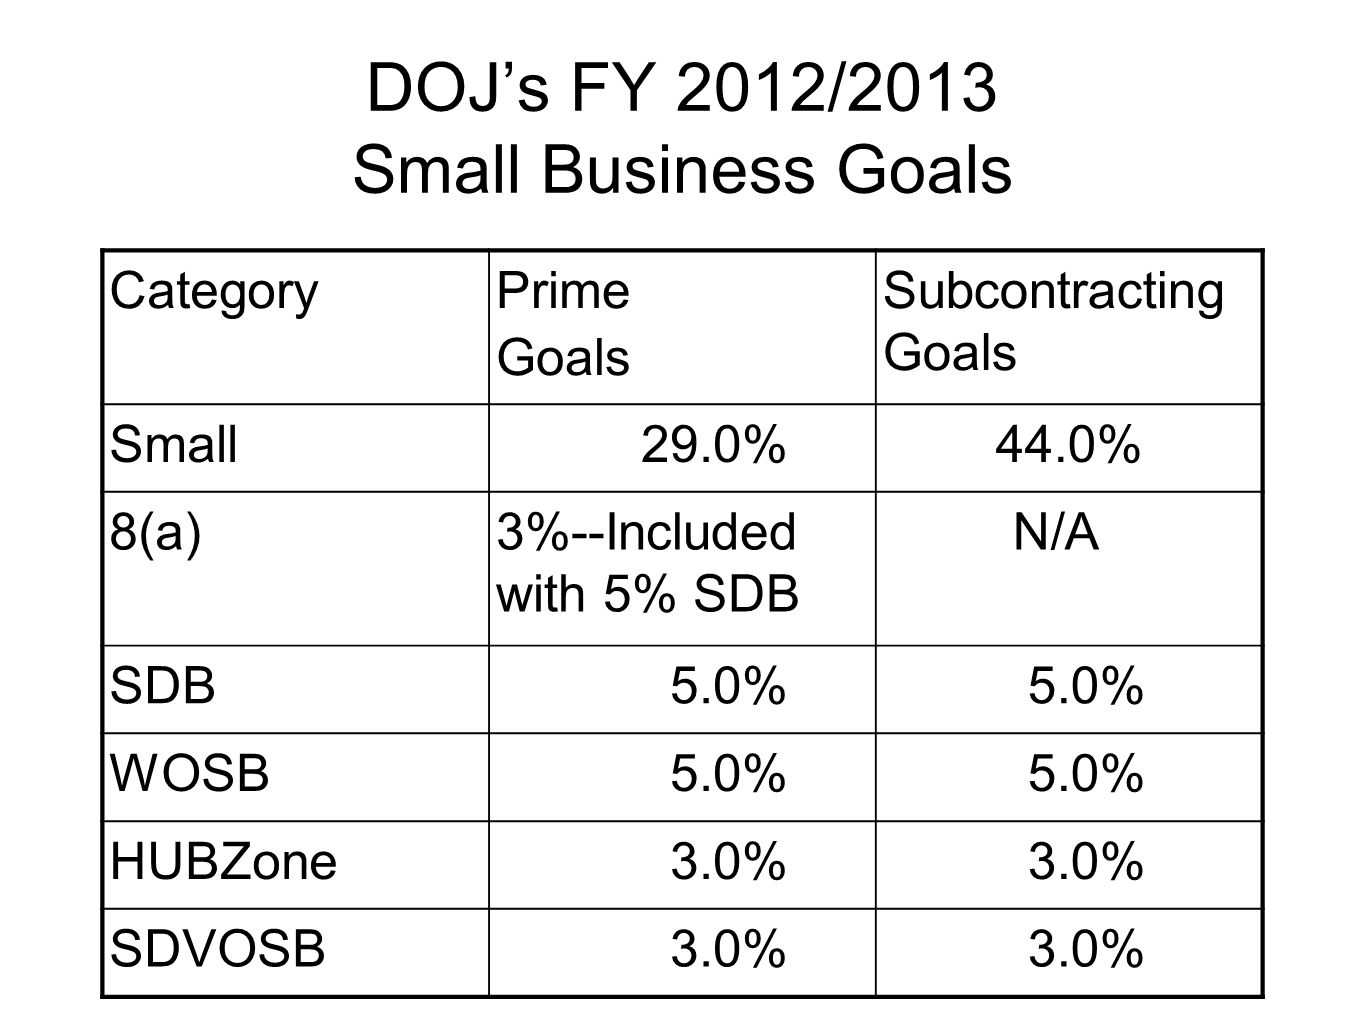 DOJ's FY 2012/2013 Small Business Goals CategoryPrime Goals Subcontracting Goals Small 29.0%44.0% 8(a)3%--Included with 5% SDB N/A SDB 5.0% WOSB 5.0% HUBZone 3.0% SDVOSB 3.0%